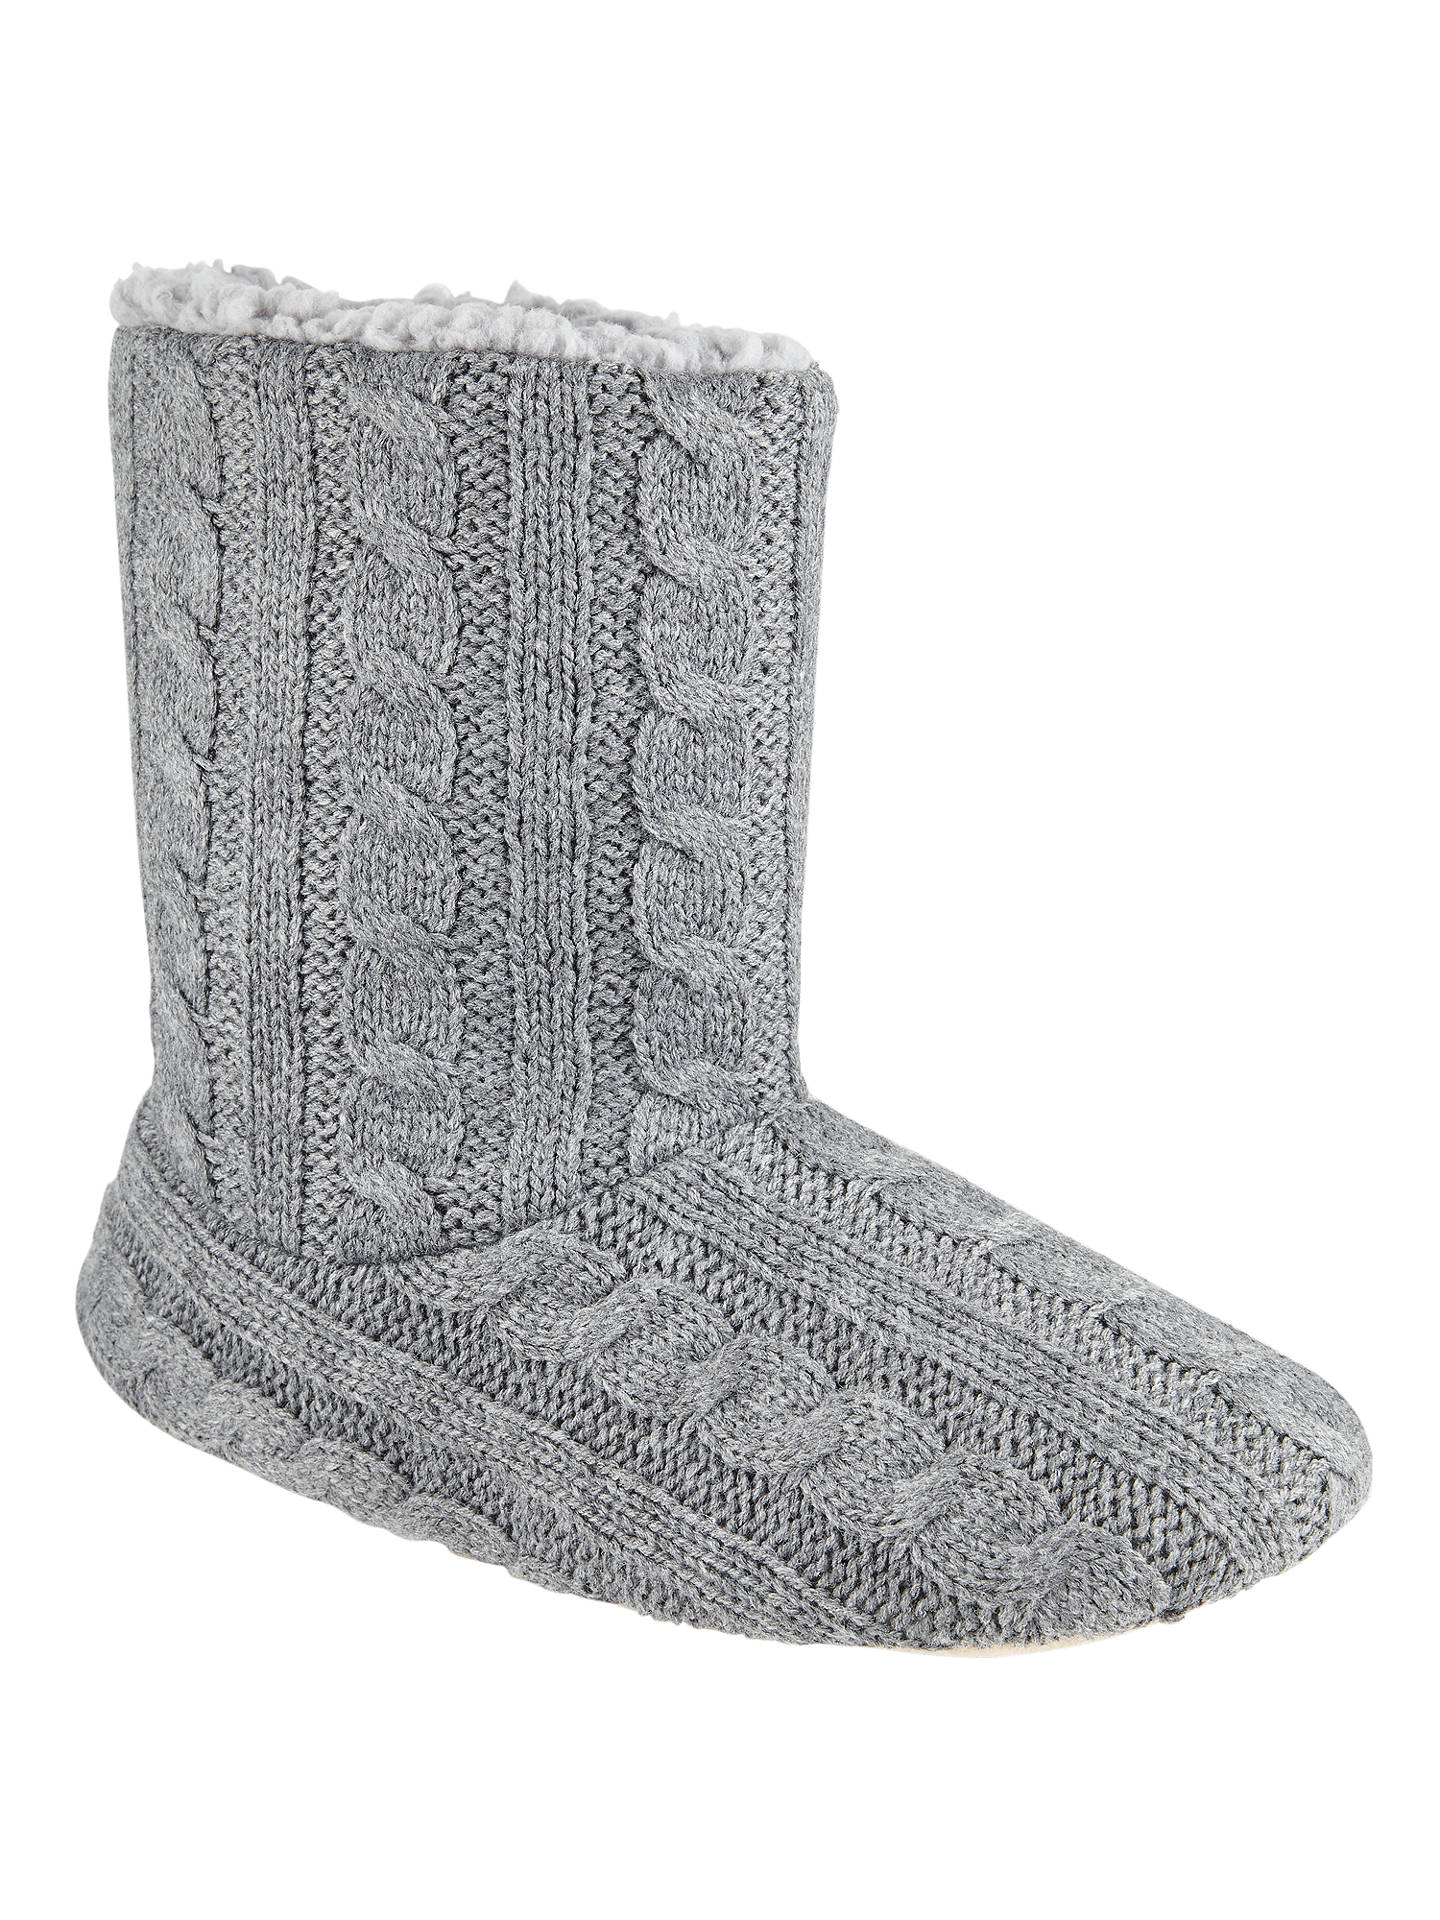 John Lewis Cable Knit Boot Slippers Grey At John Lewis Partners